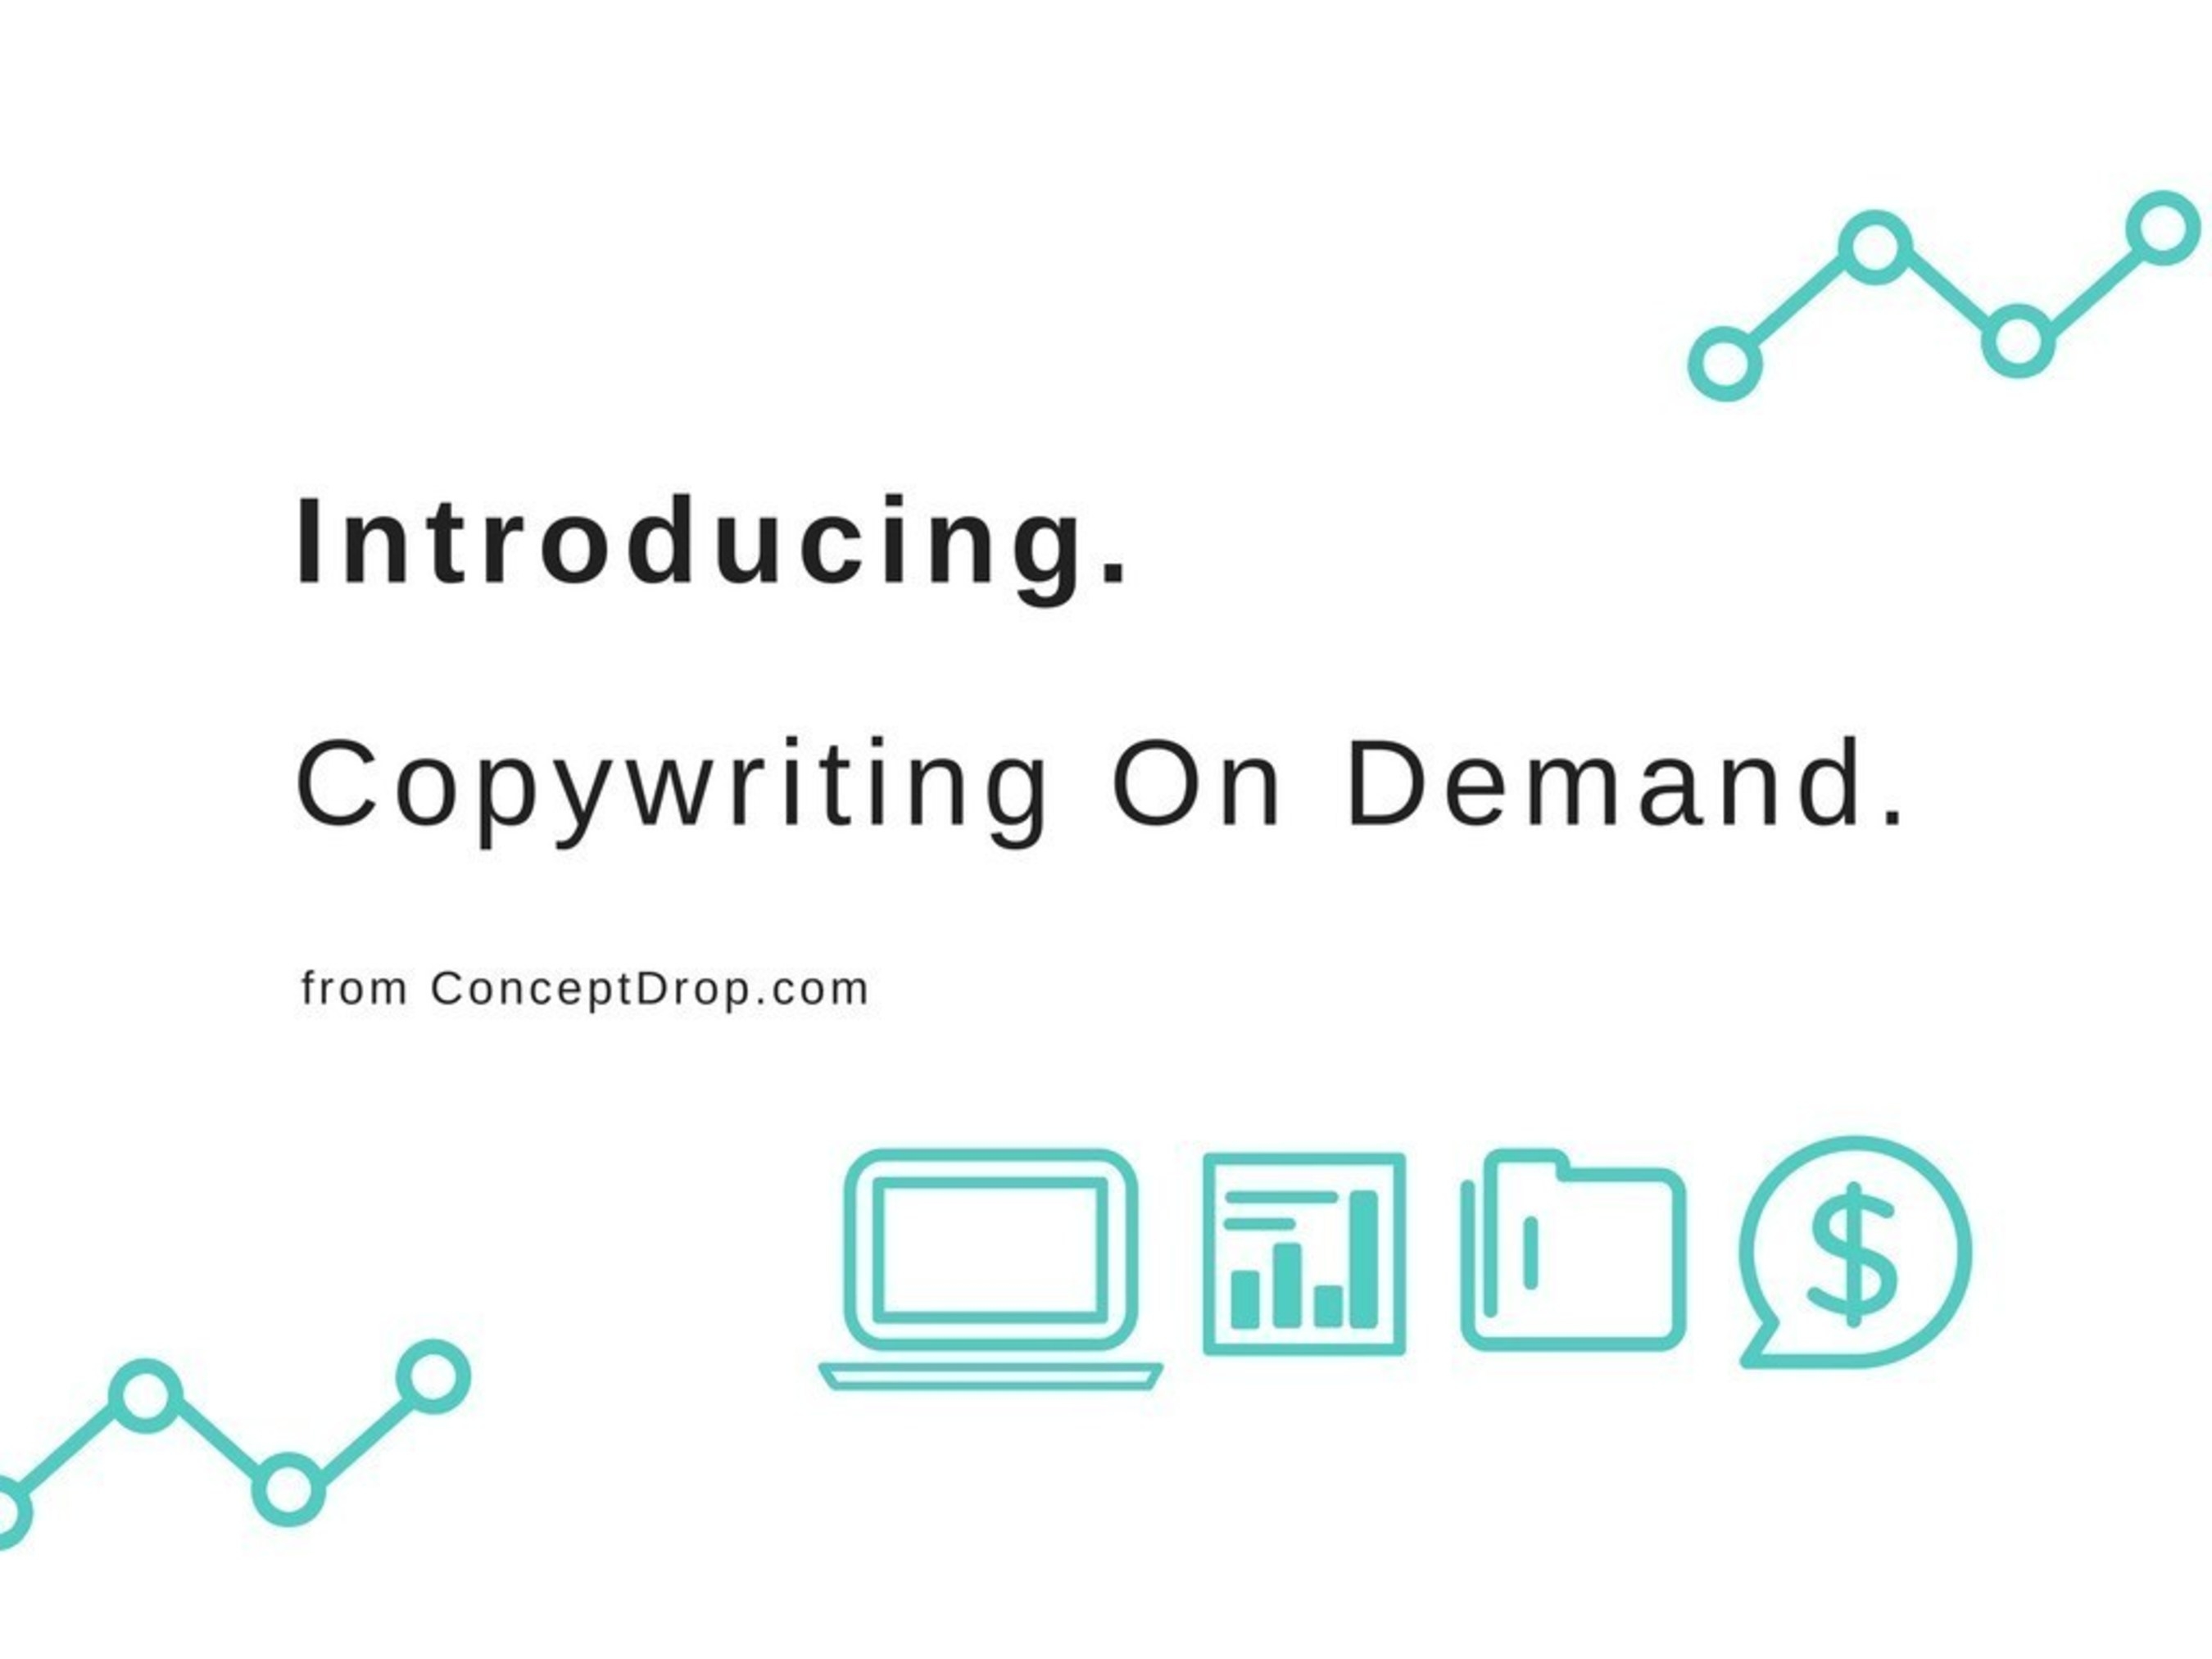 ConceptDrop Introduces Copywriting On Demand